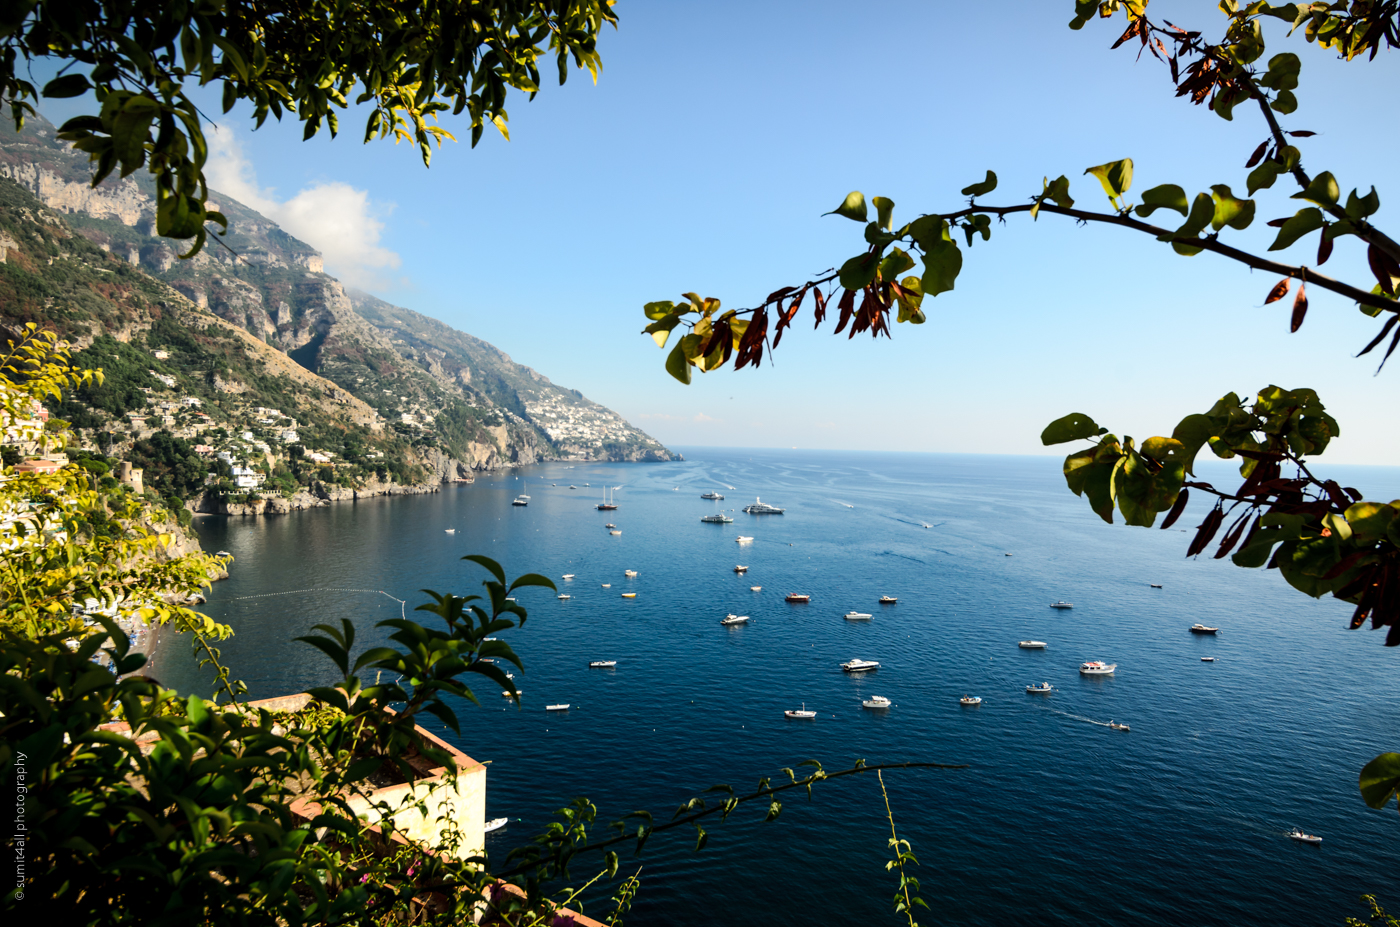 Views all around in Positano on the Amalfi Coast, Italy